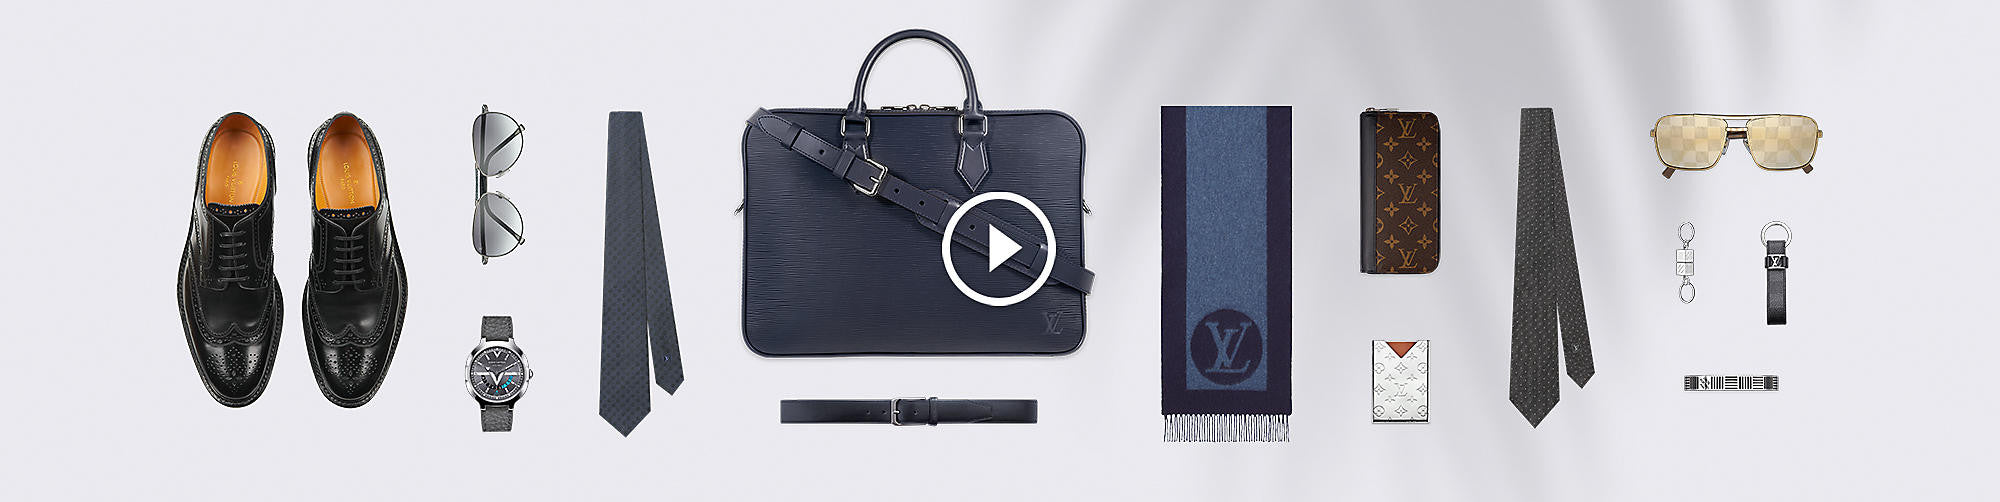 louis-vuitton-mens-accessories